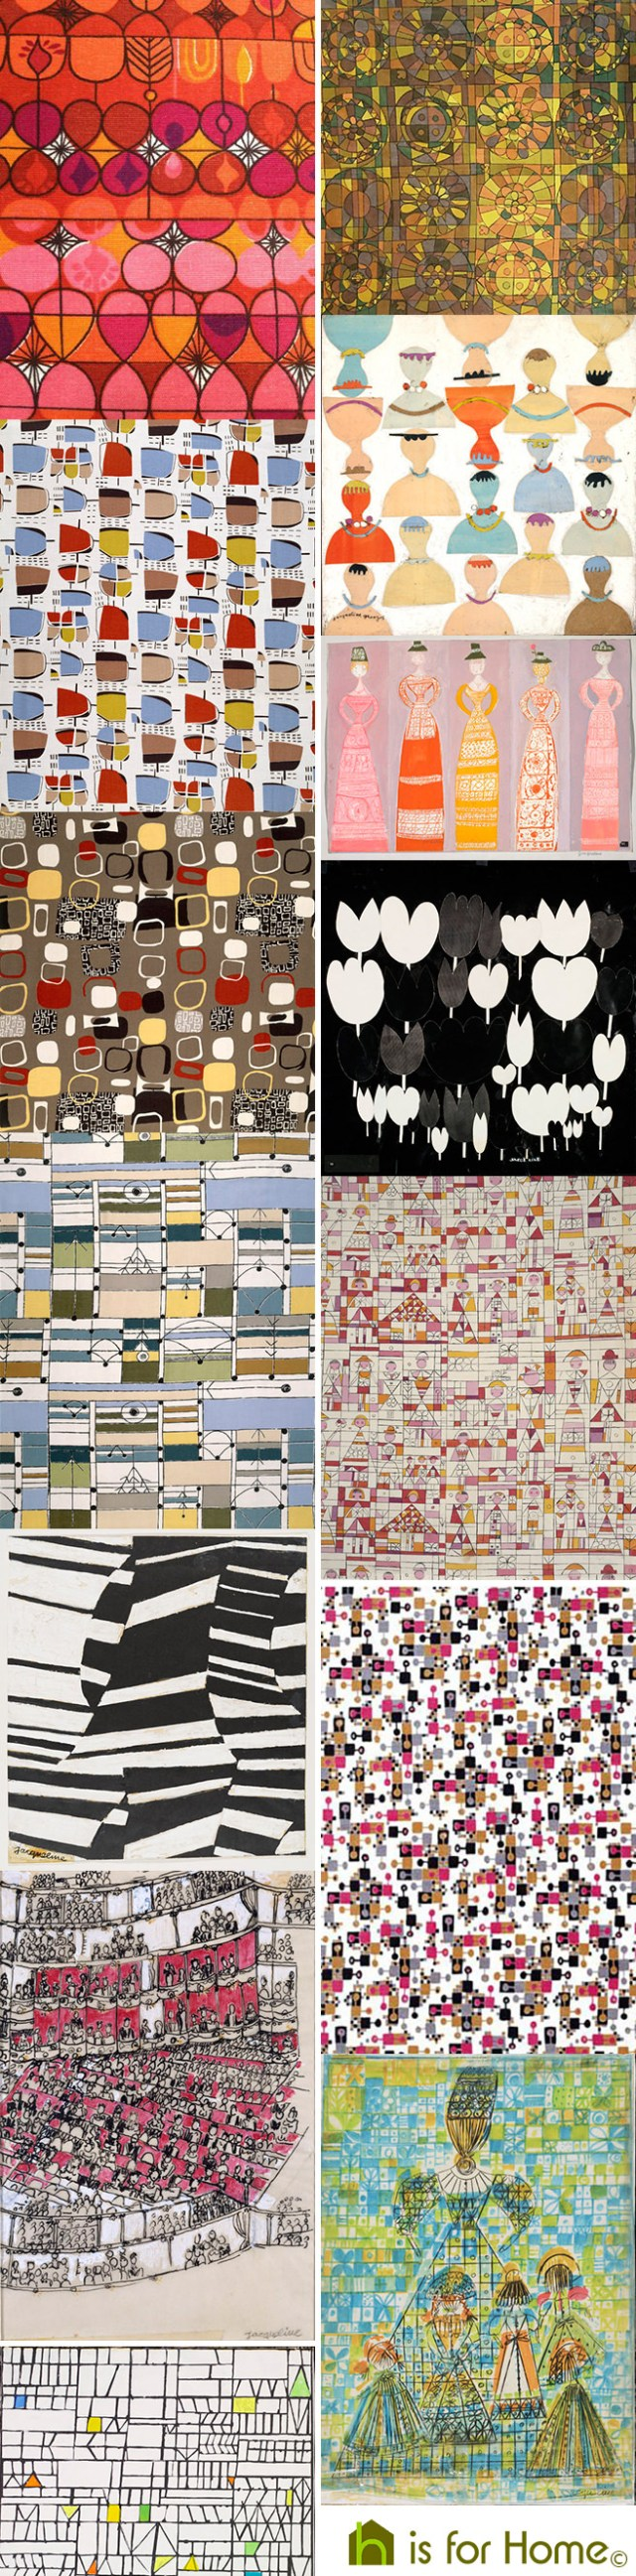 Mosaic of Jacqueline Groag designs | H is for Home